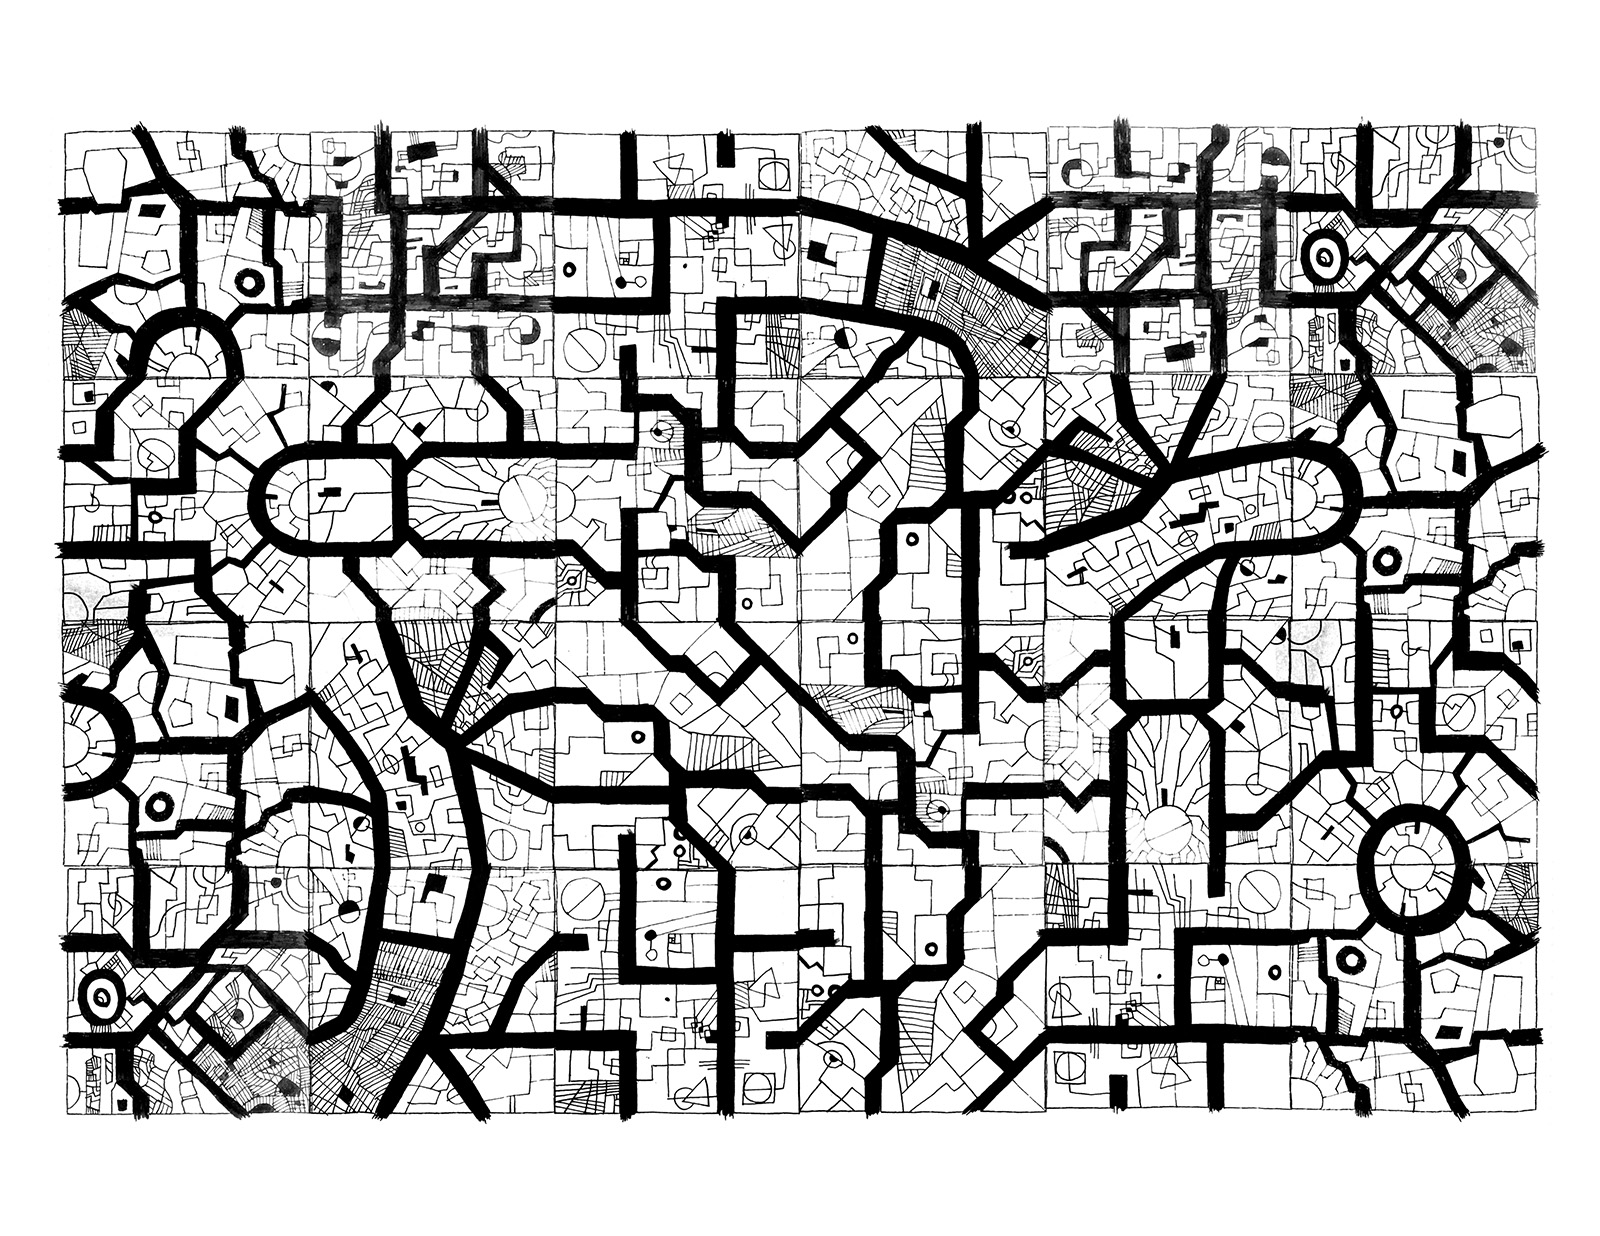 This one uses the full set of tiles a few times creating what I would call a whole district of a Megacity.